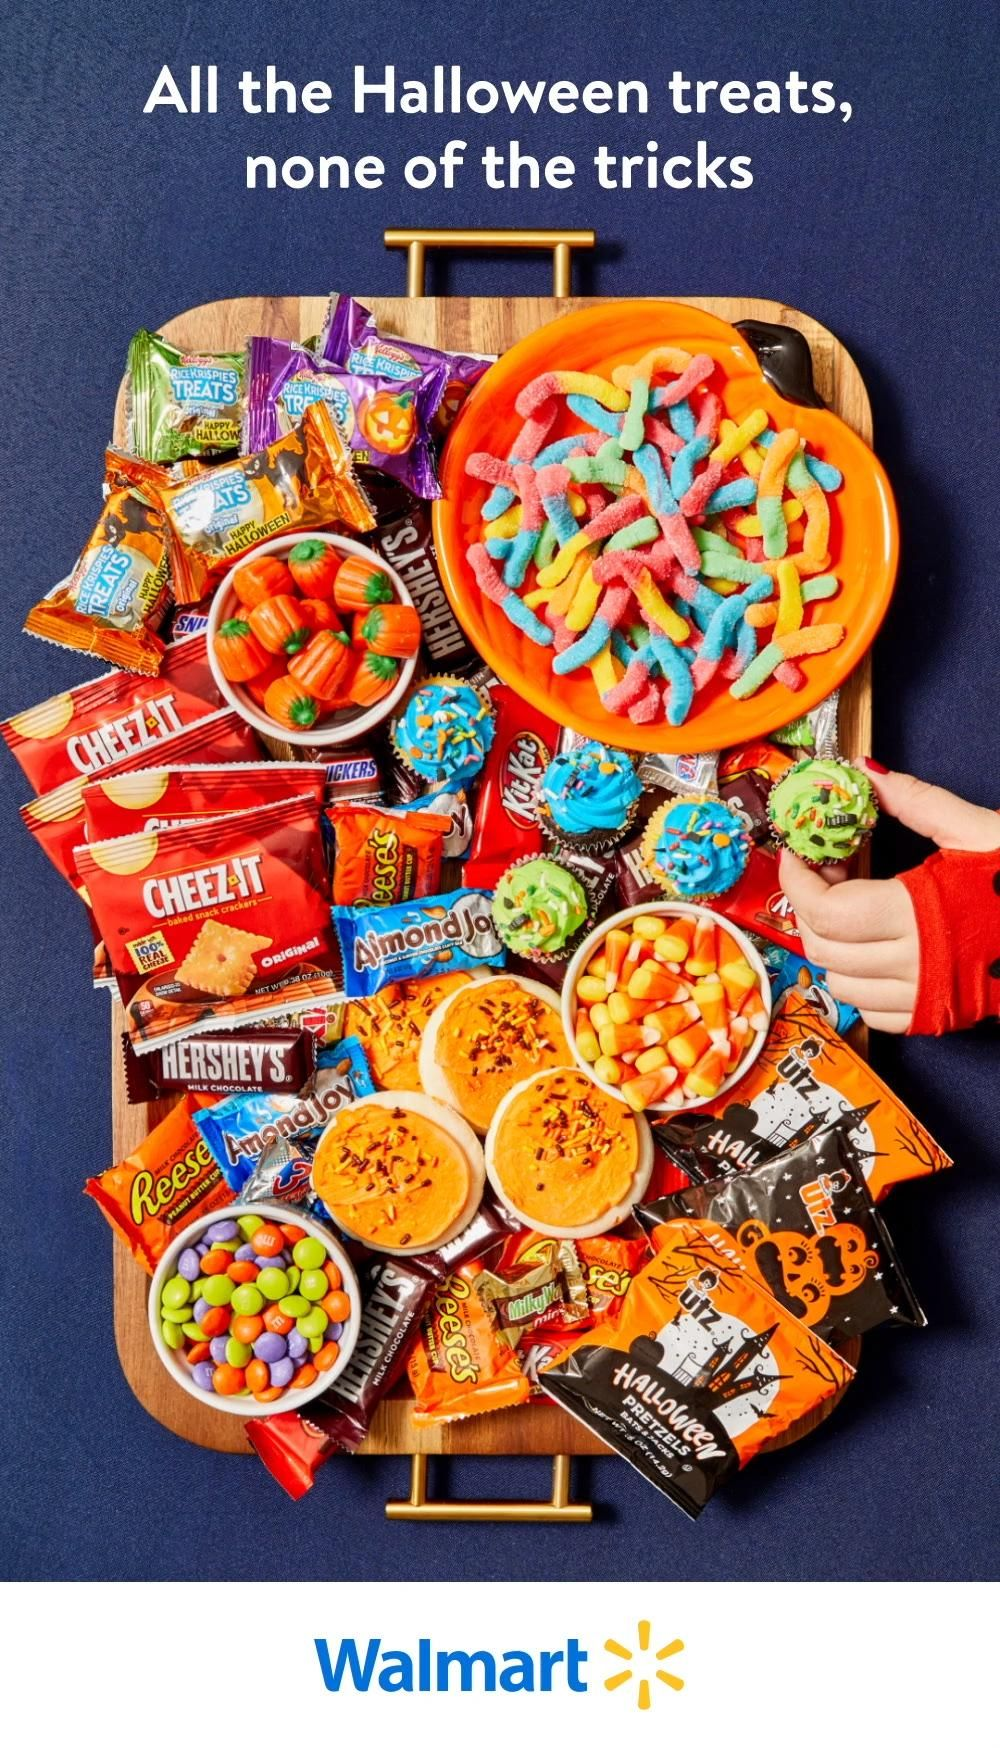 Whether you're stocking up for a celebration, or you just want to get in the spirit and spoil everyone in the house, Walmart has all the candy and treats you need at everyday low prices you'll love.